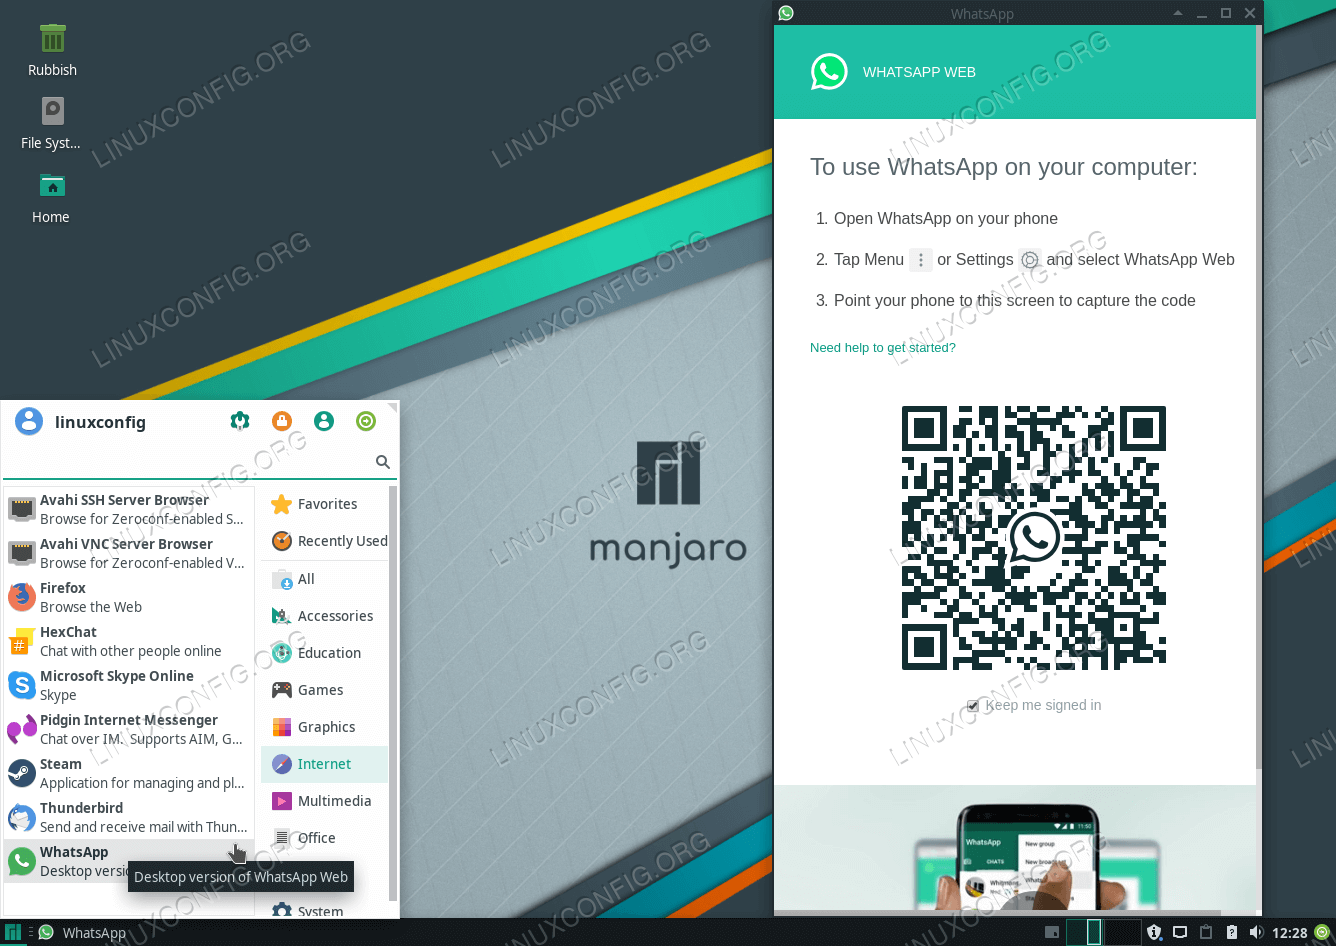 How to install WhatsApp on Manjaro 18 Linux - LinuxConfig org